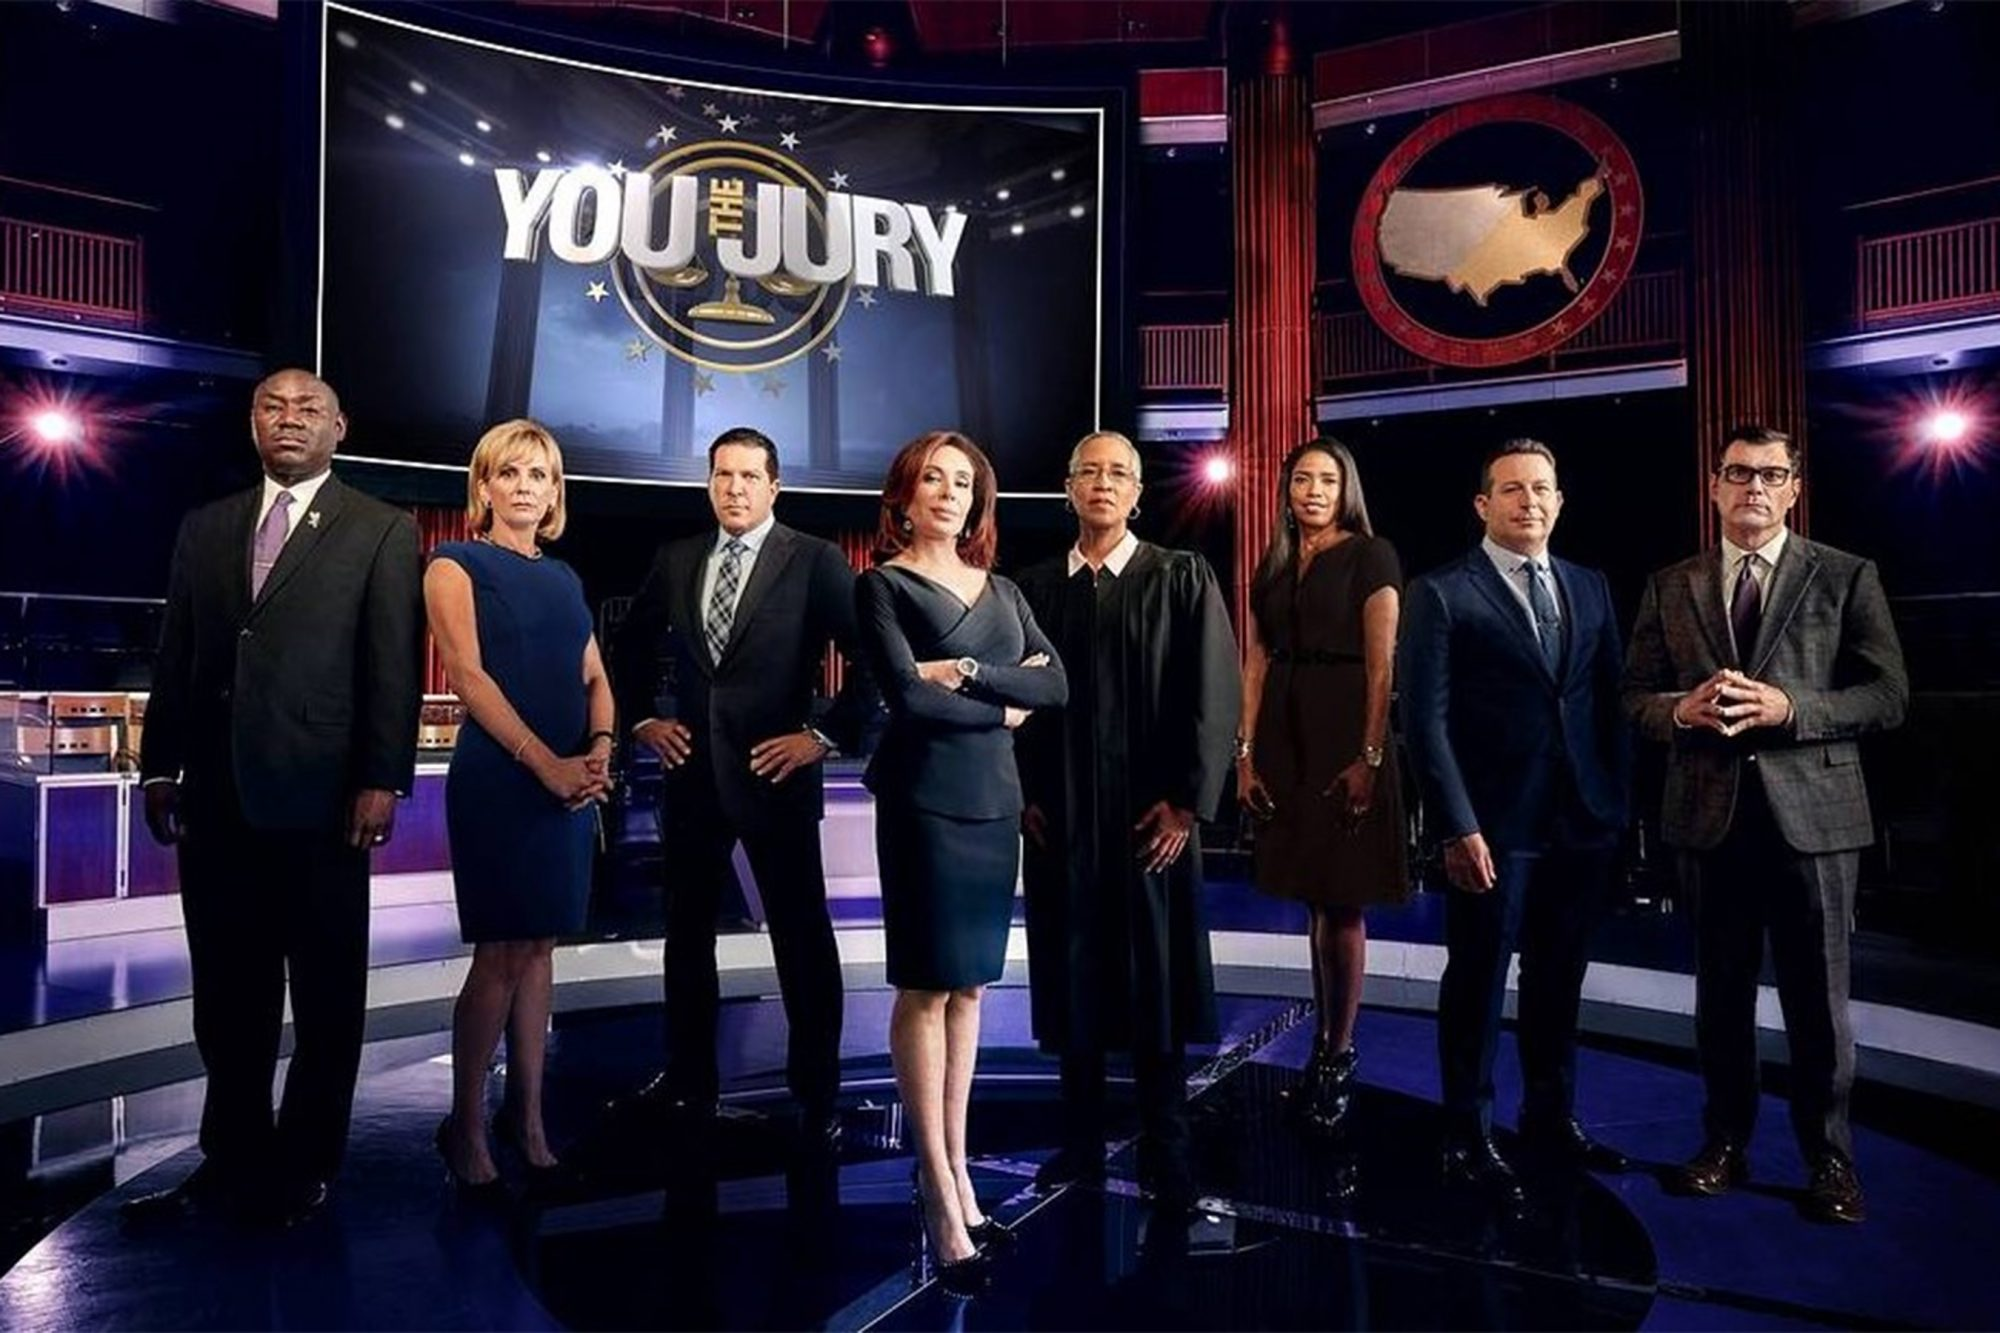 You-The-Jury